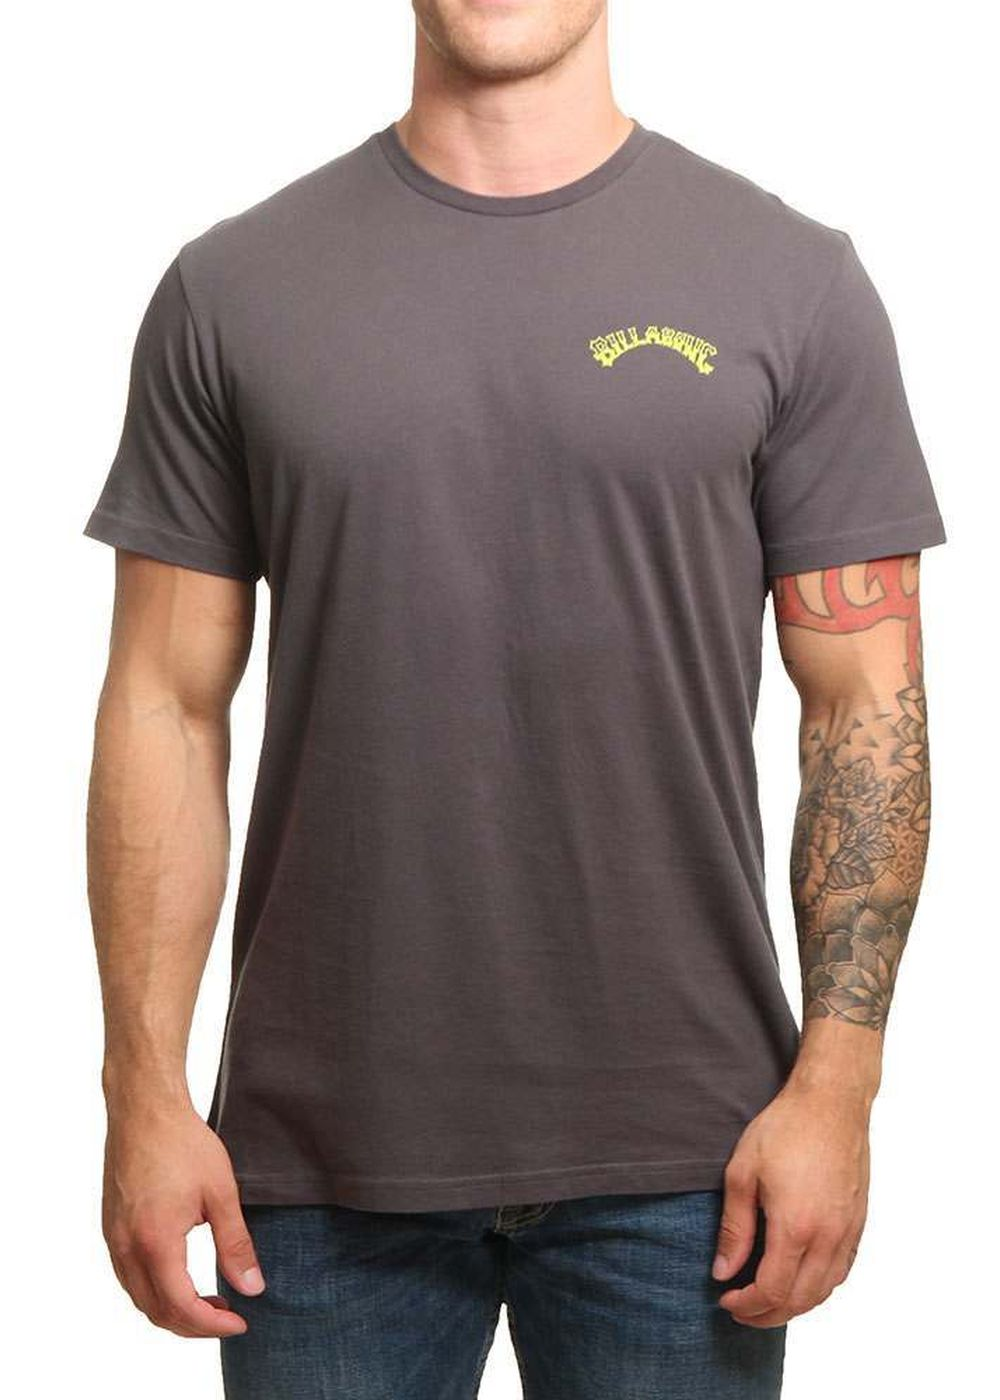 billabong-summer-tee-asphalt